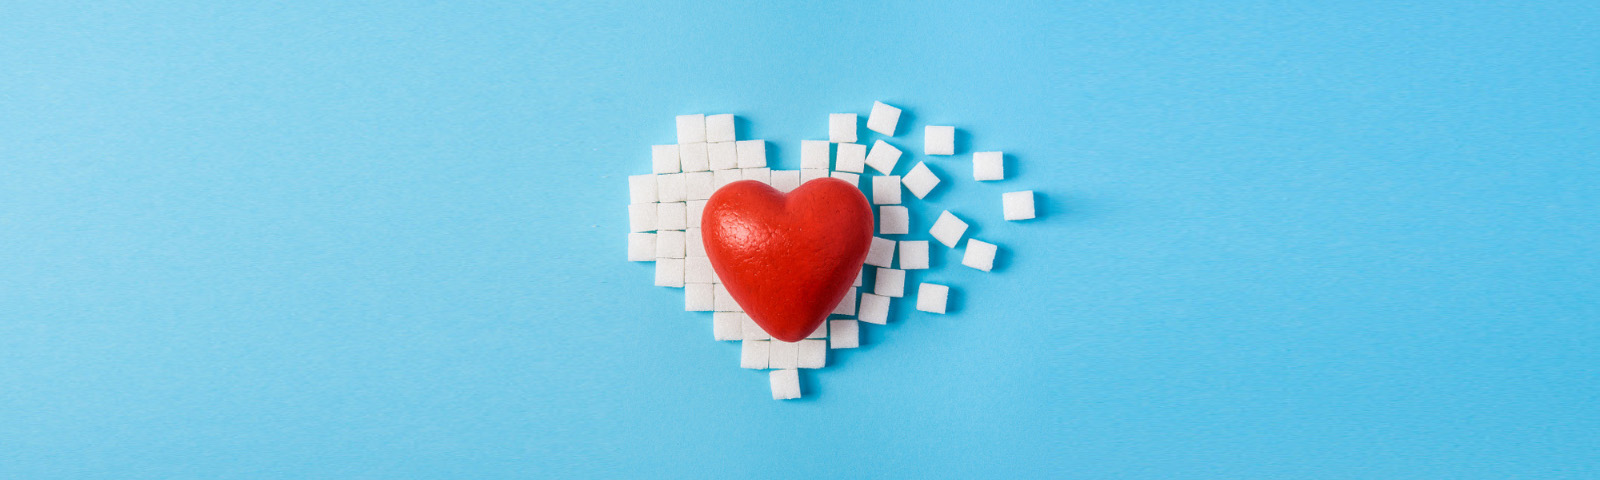 The diabetes and heart disease threat not on our radar